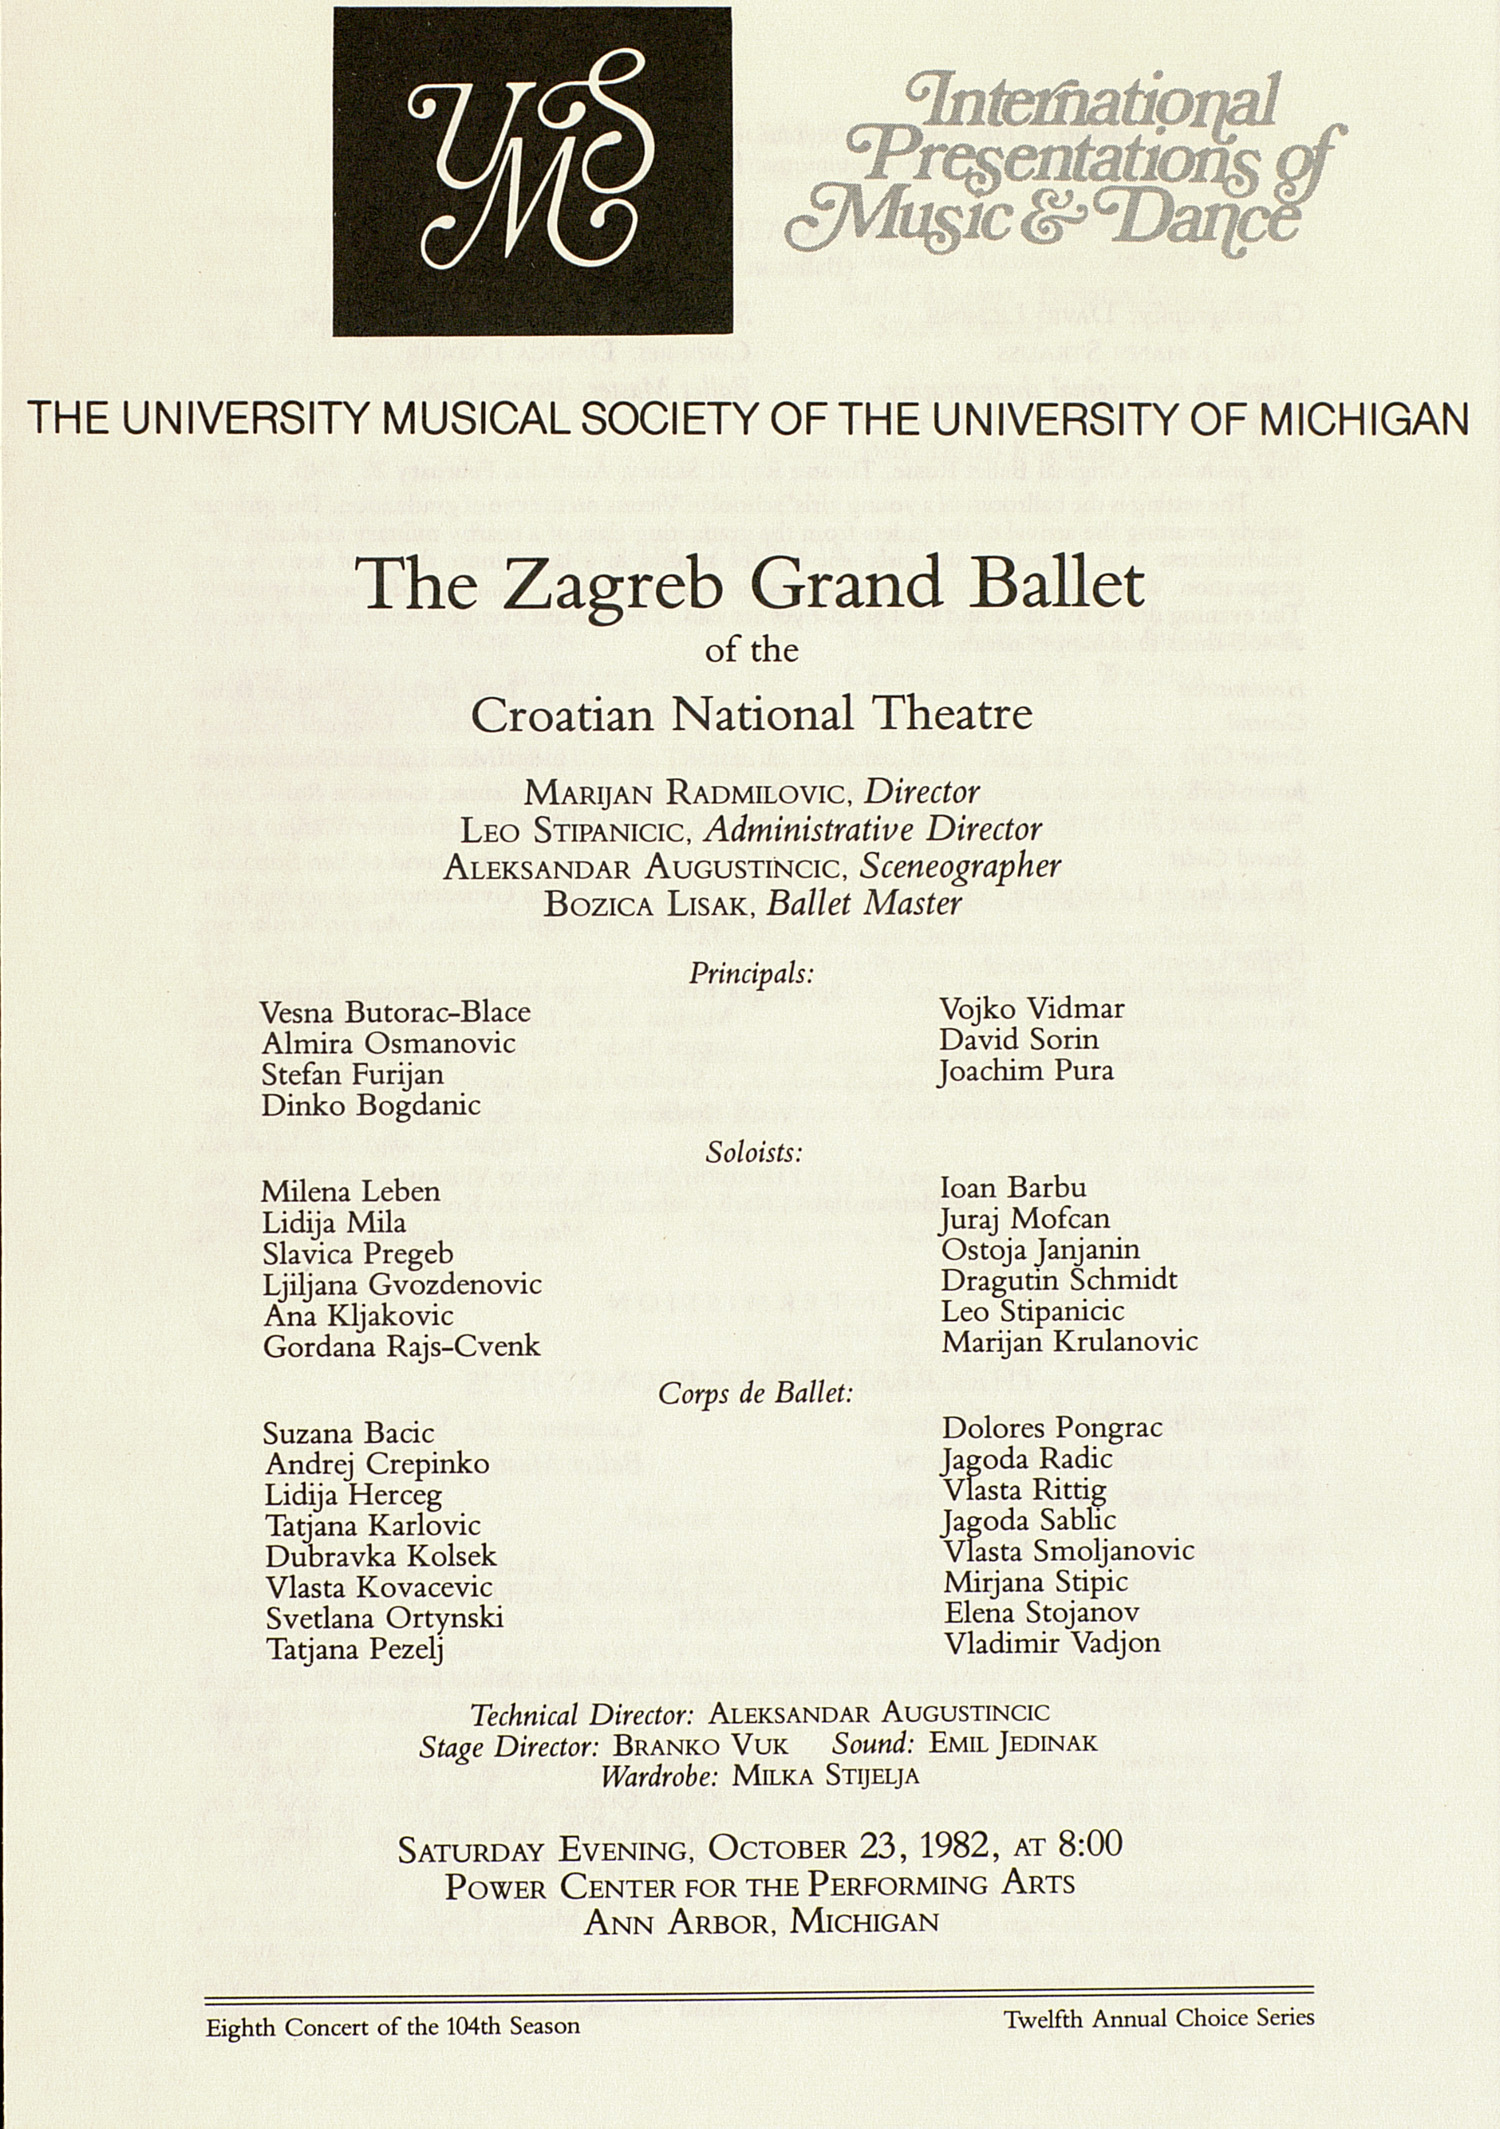 UMS Concert Program, October 23, 1982: The Zagreb Grand Ballet Of The Croatian National Theatre --  image